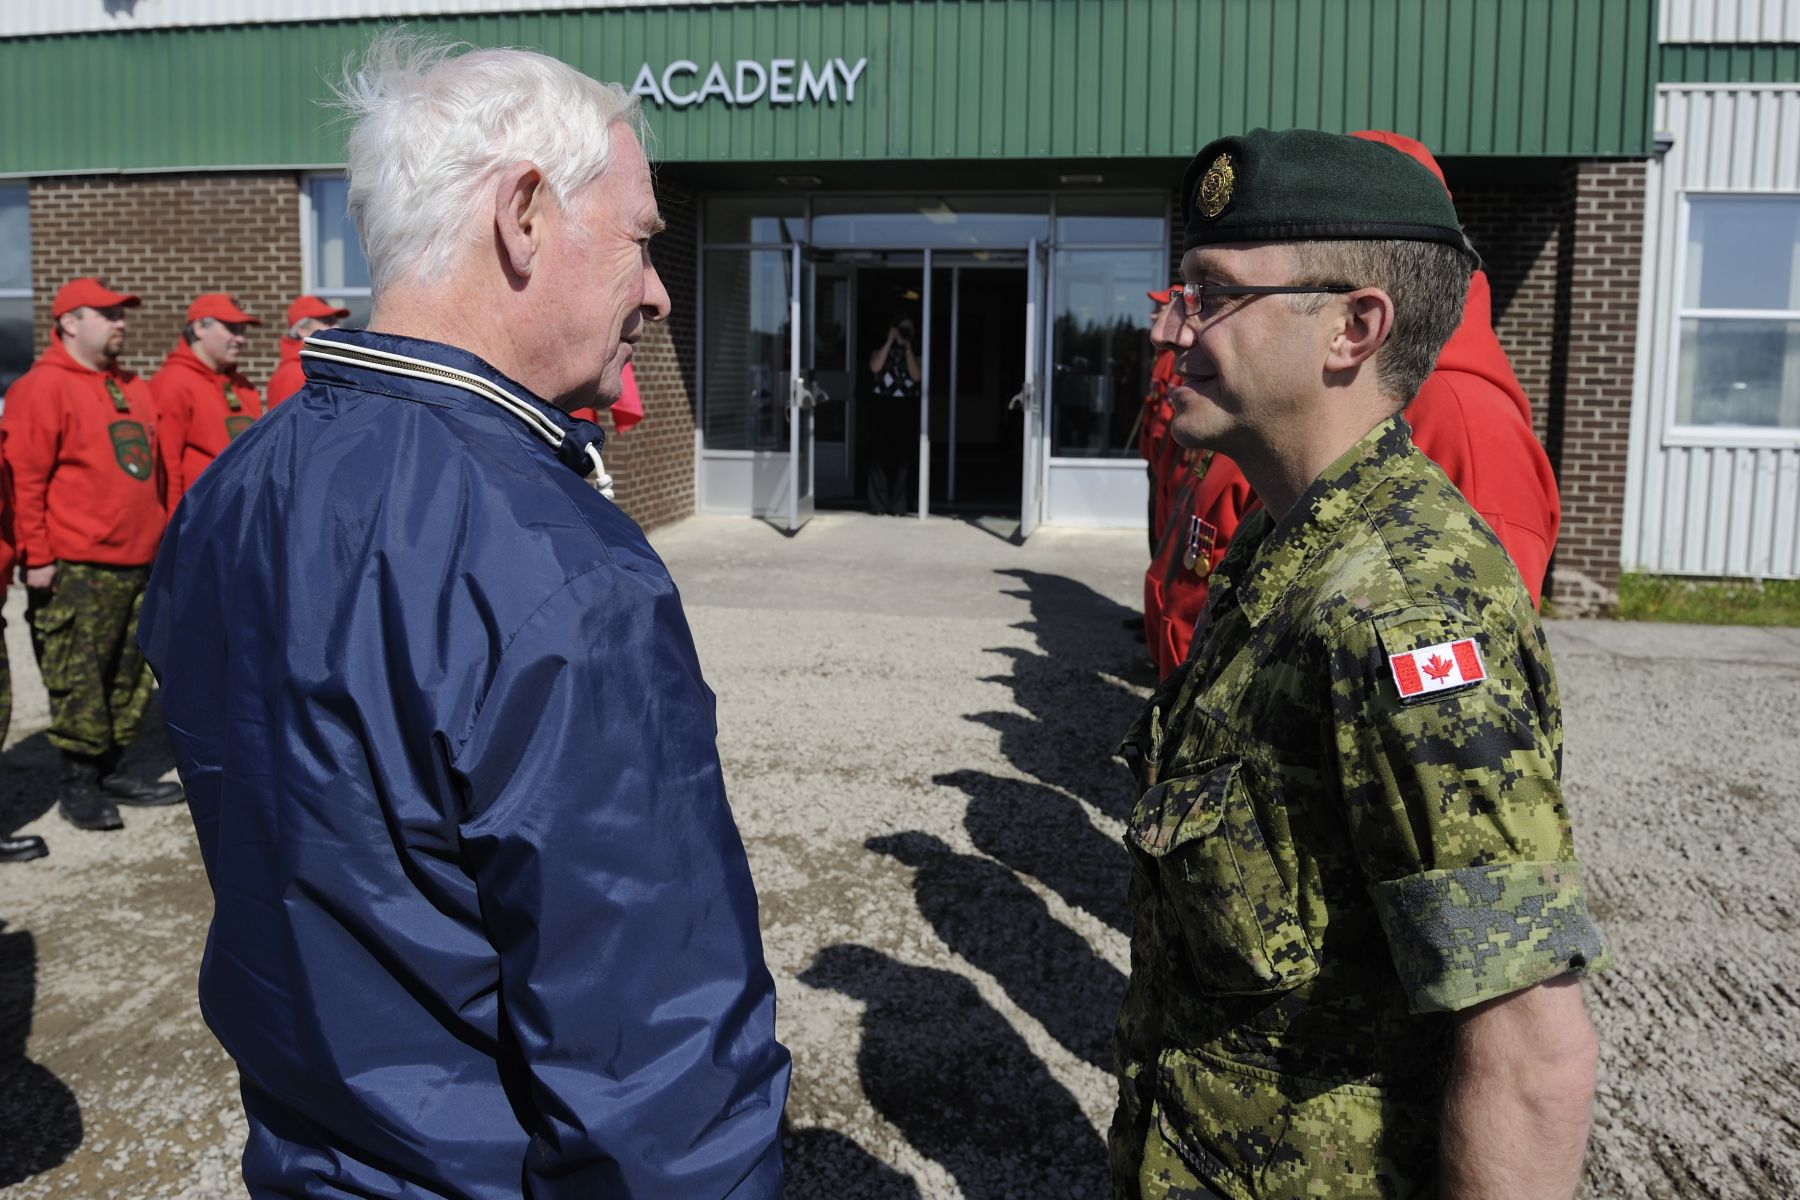 Upon his arrival to the official welcoming ceremony, His Excellency spoke with the Commander of the guard of honour composed of members of the Canadian Rangers.